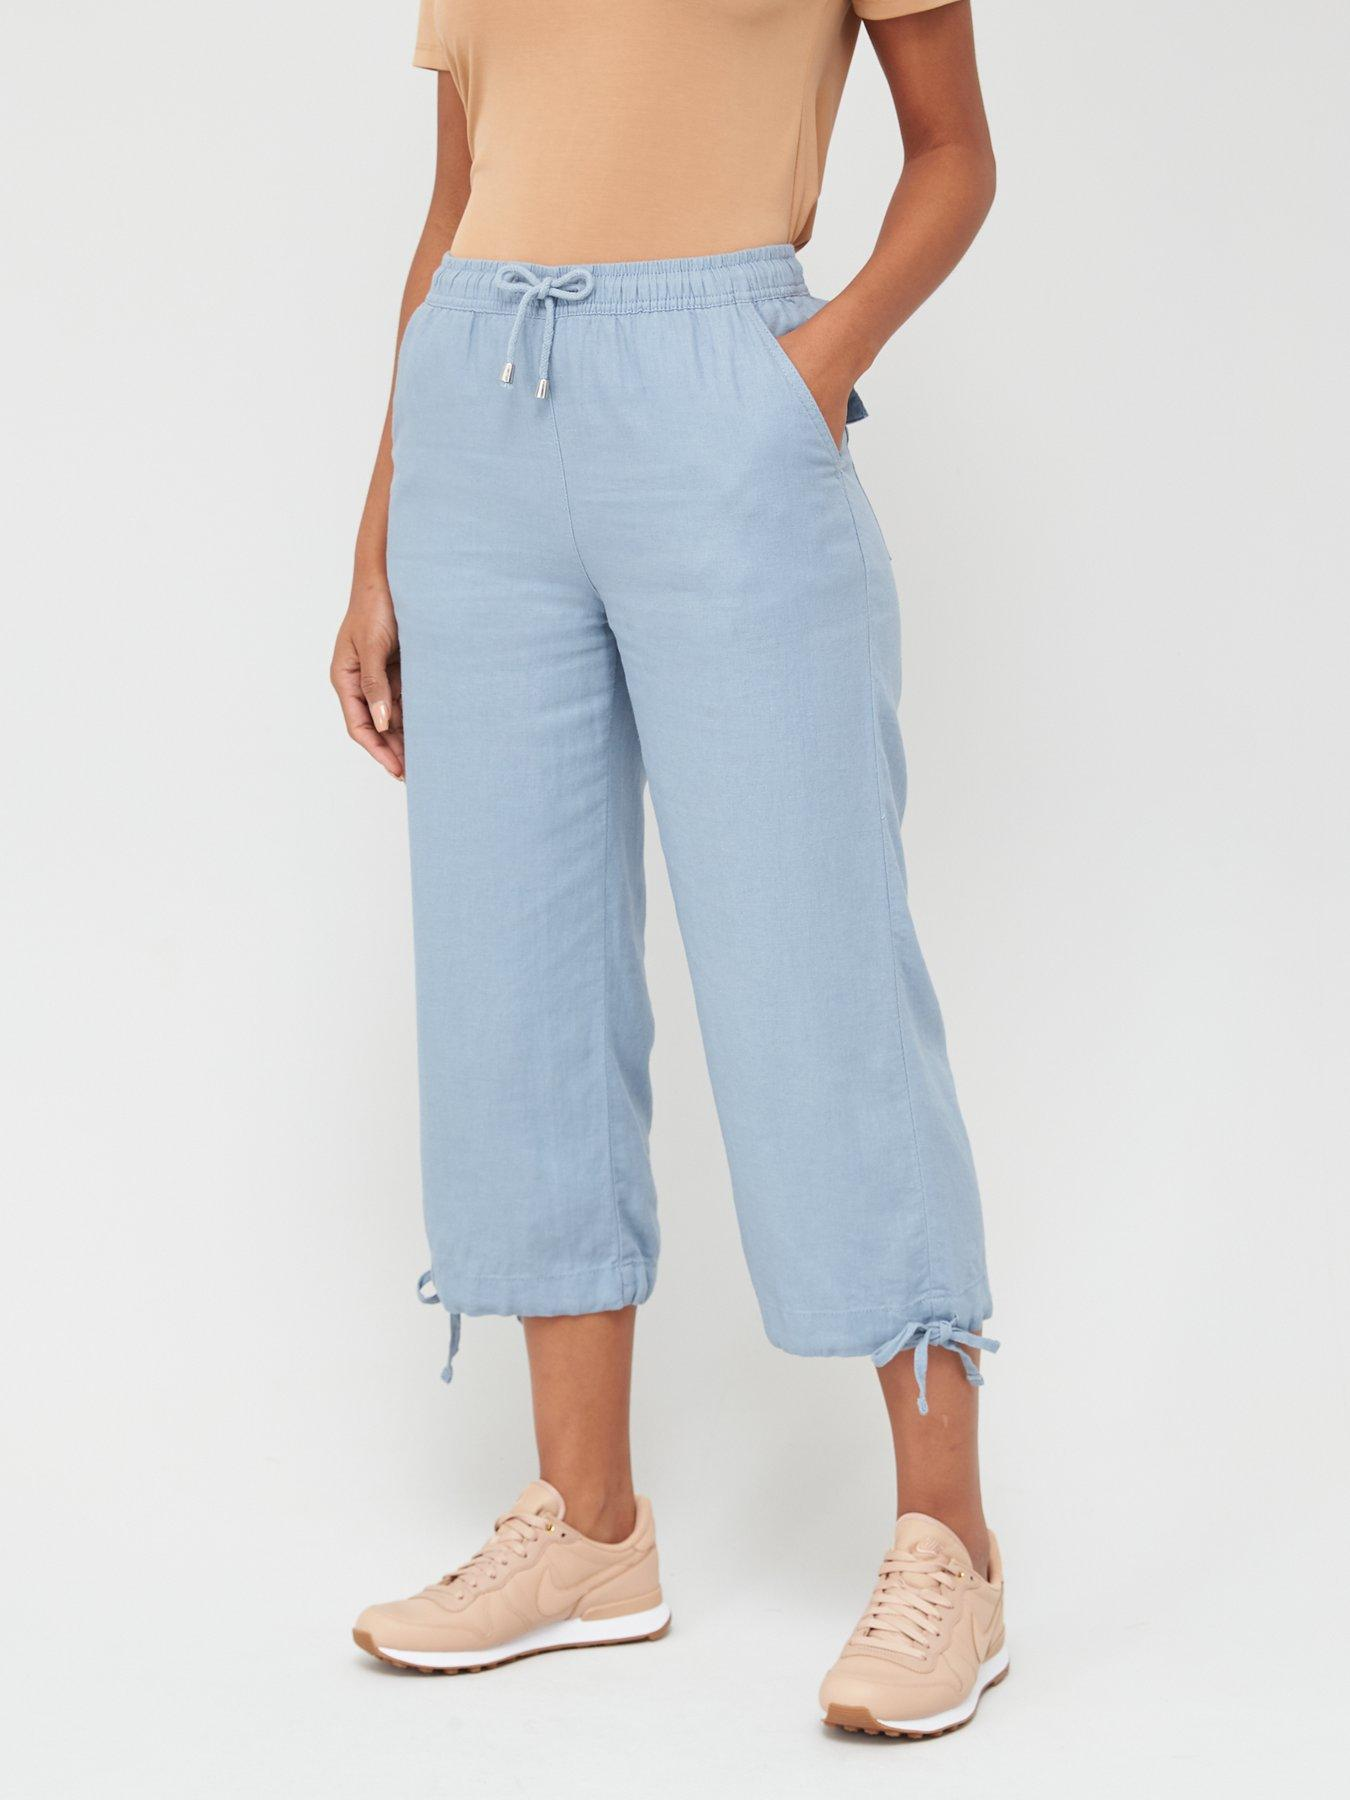 Womens NEXT Linen Trousers Ladies Summer Casual Size UK 20-26 Holiday Free P/&P